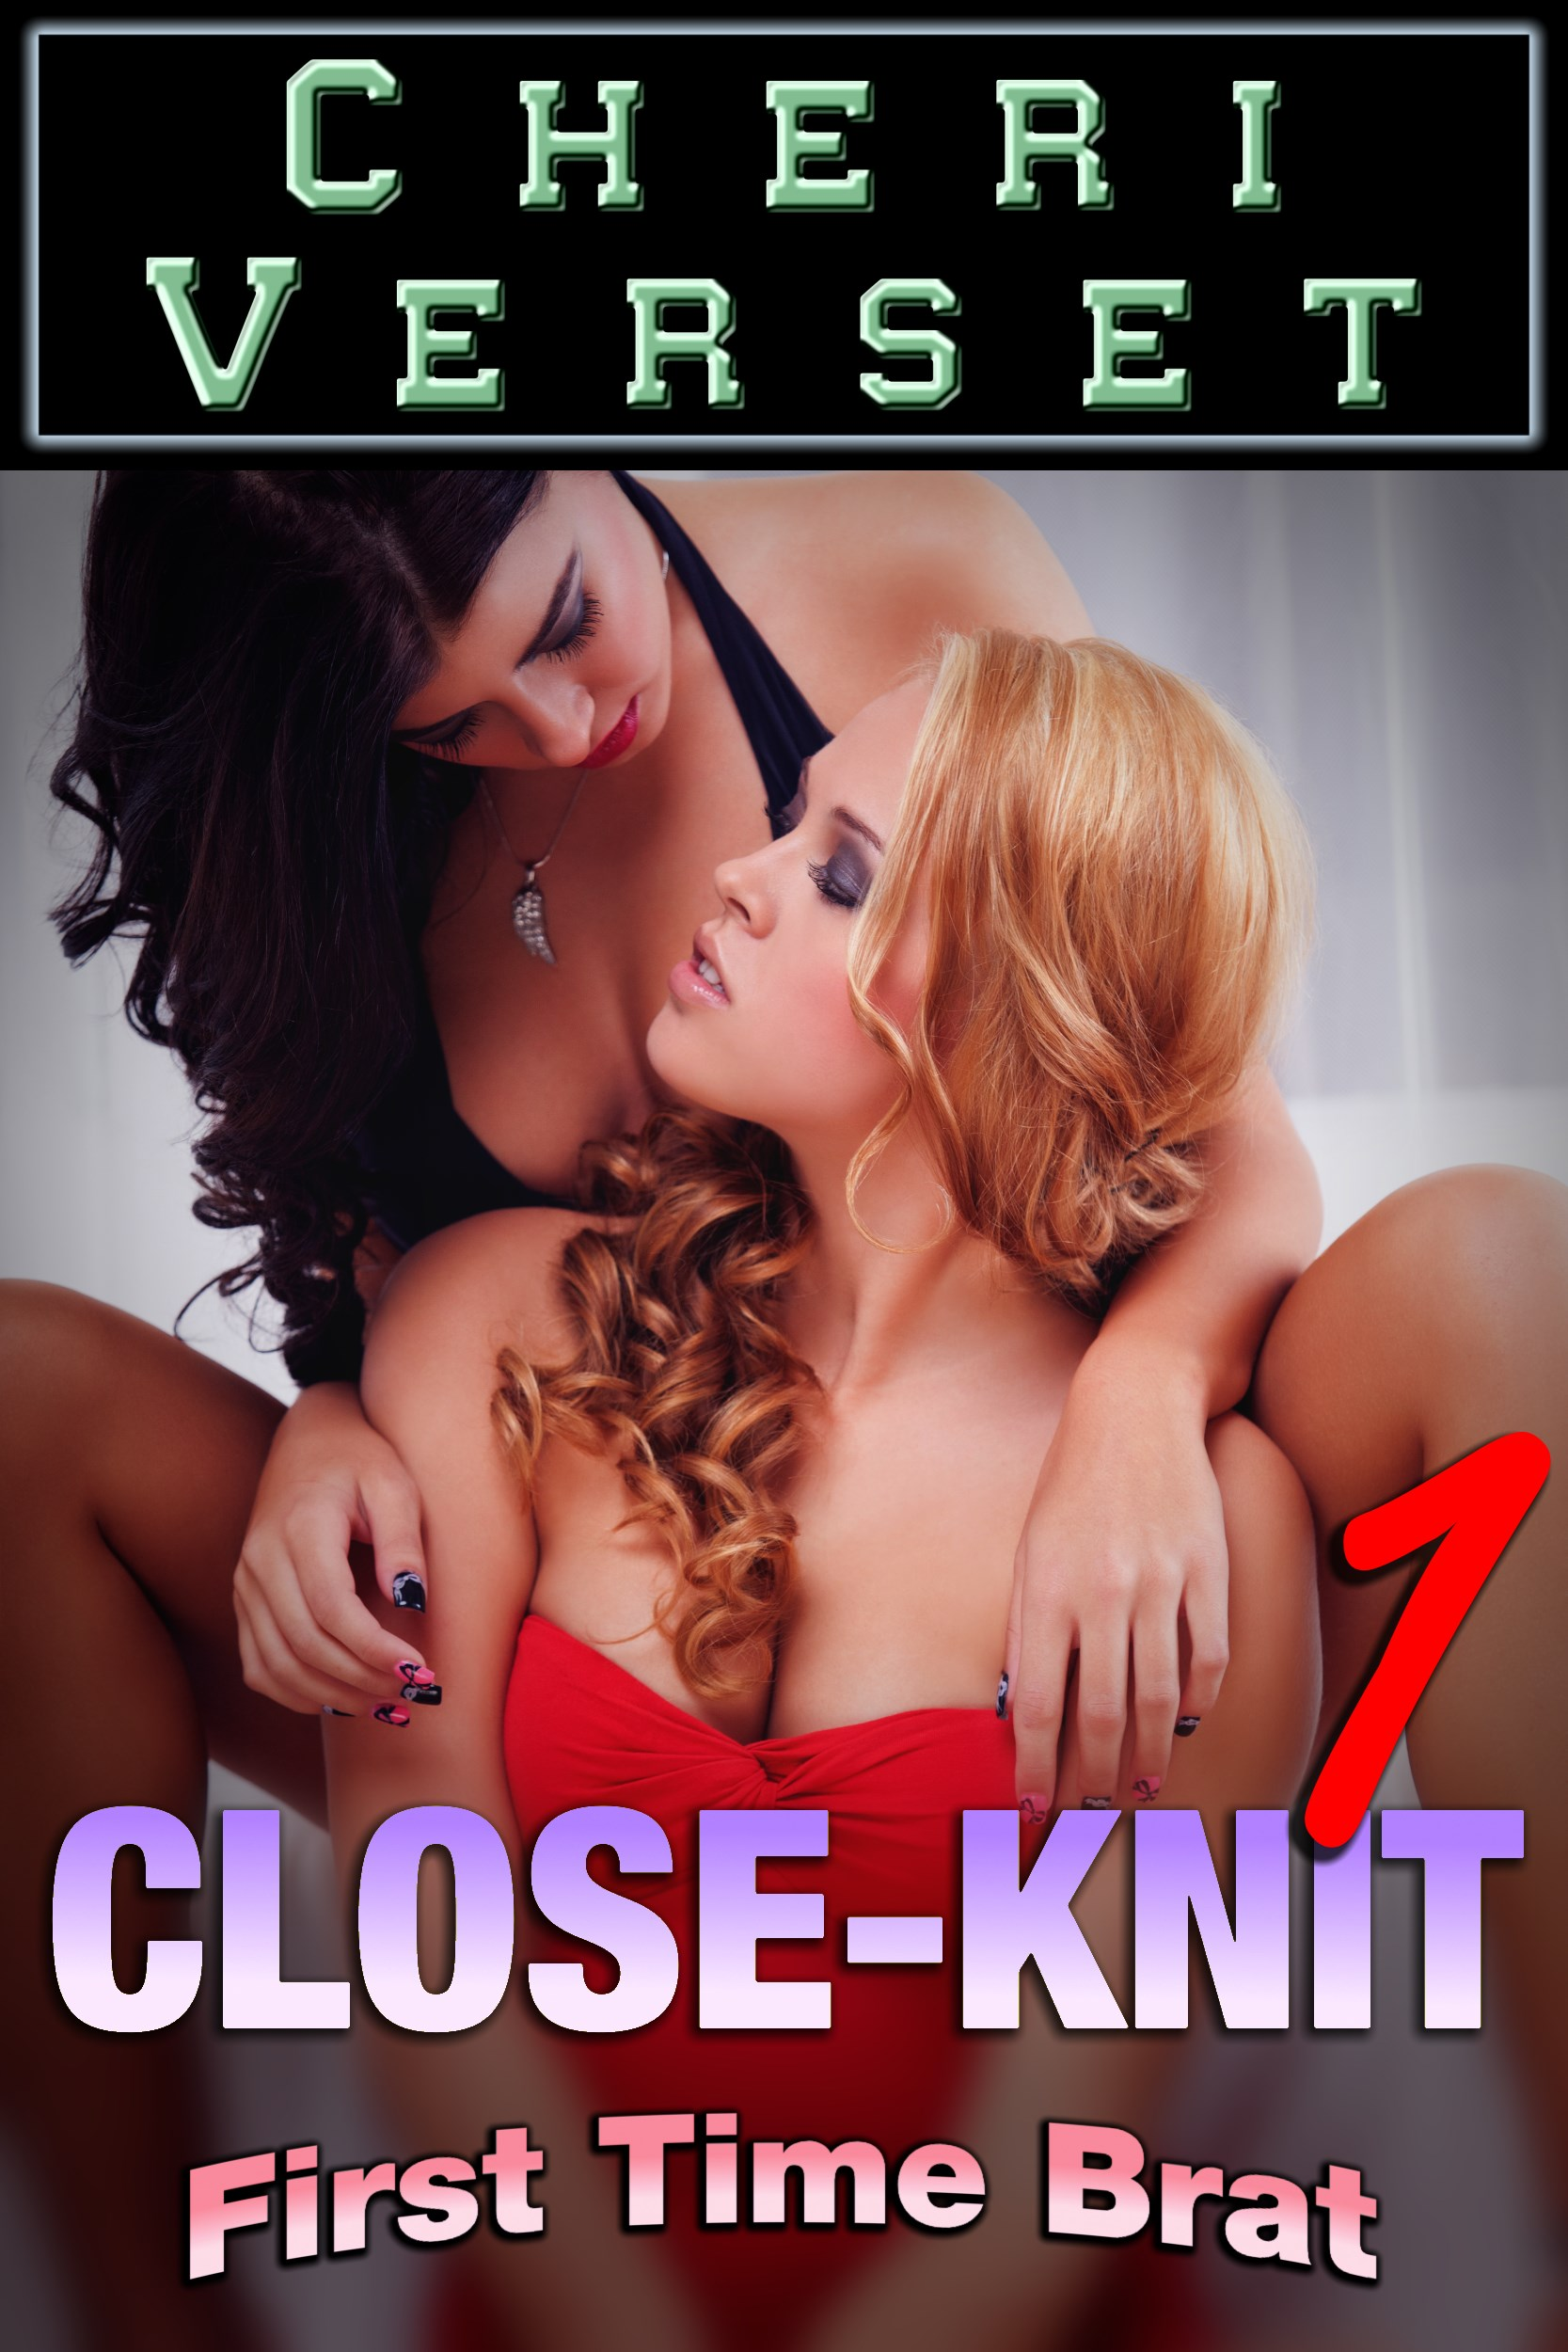 18Yo Nude close-knit 1 - first time brat, an ebookcheri verset